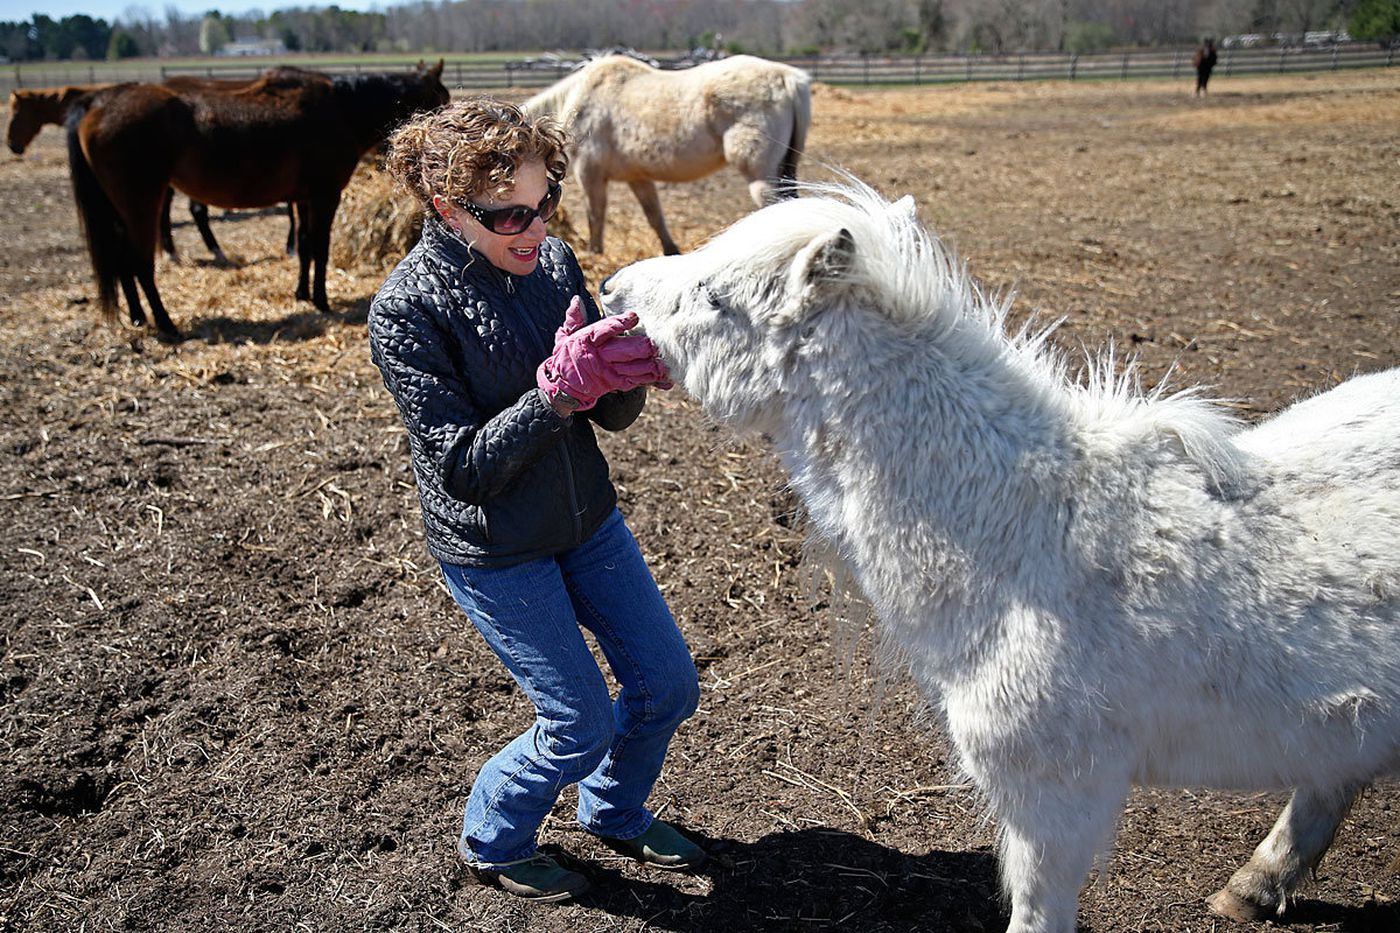 Founder of New Jersey horse sanctuary charged with animal cruelty